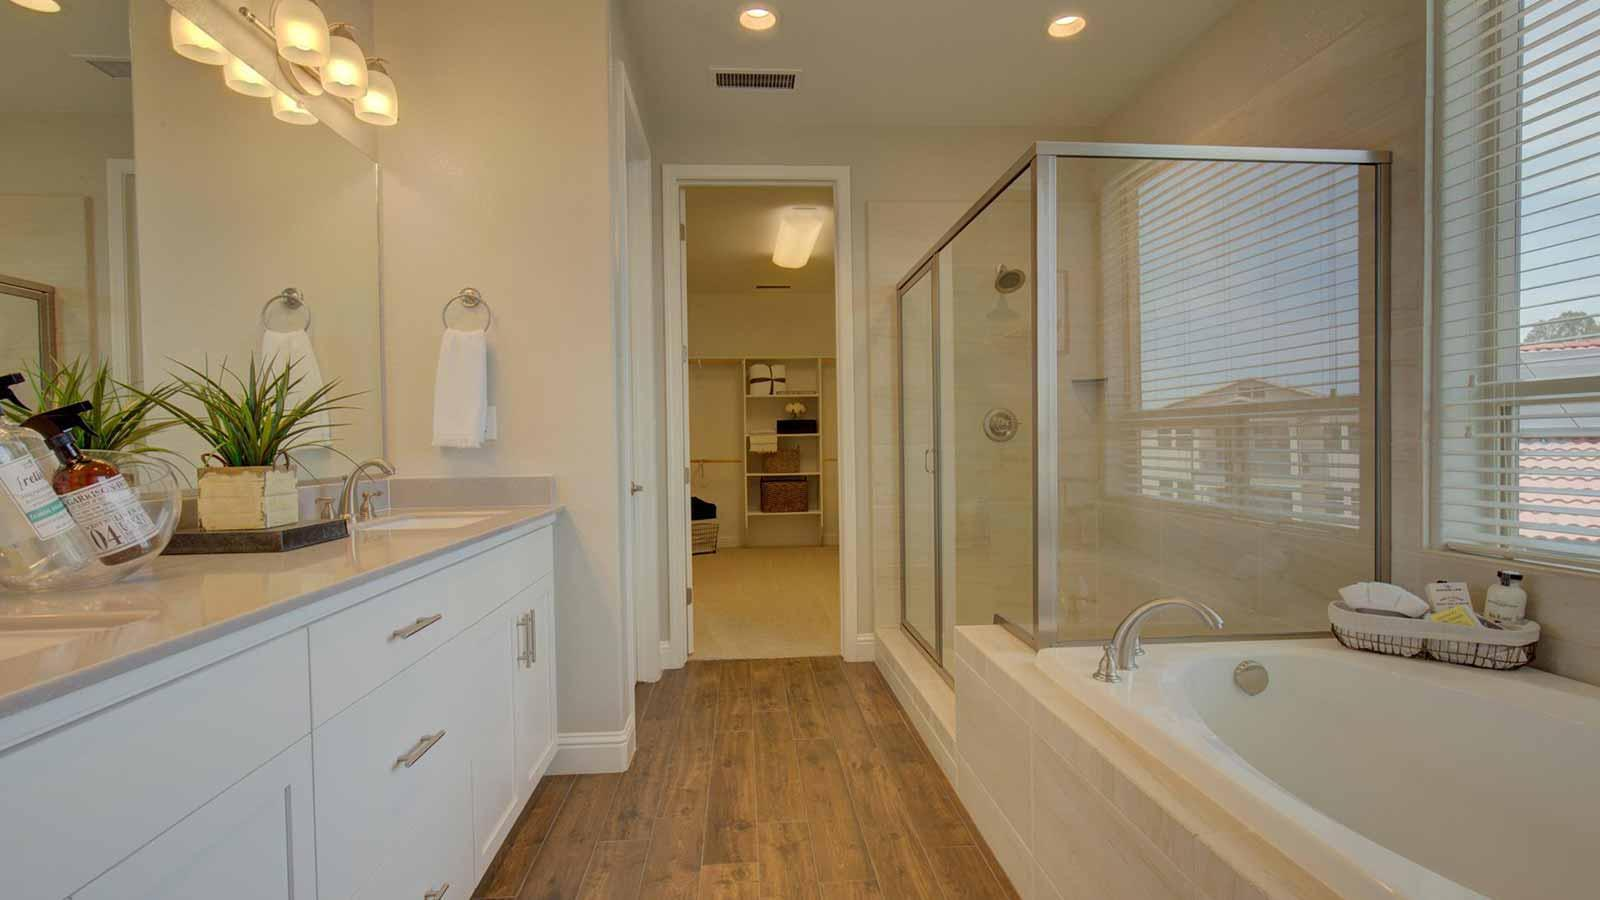 Bathroom featured in the Zoie By Granville Homes  in Fresno, CA